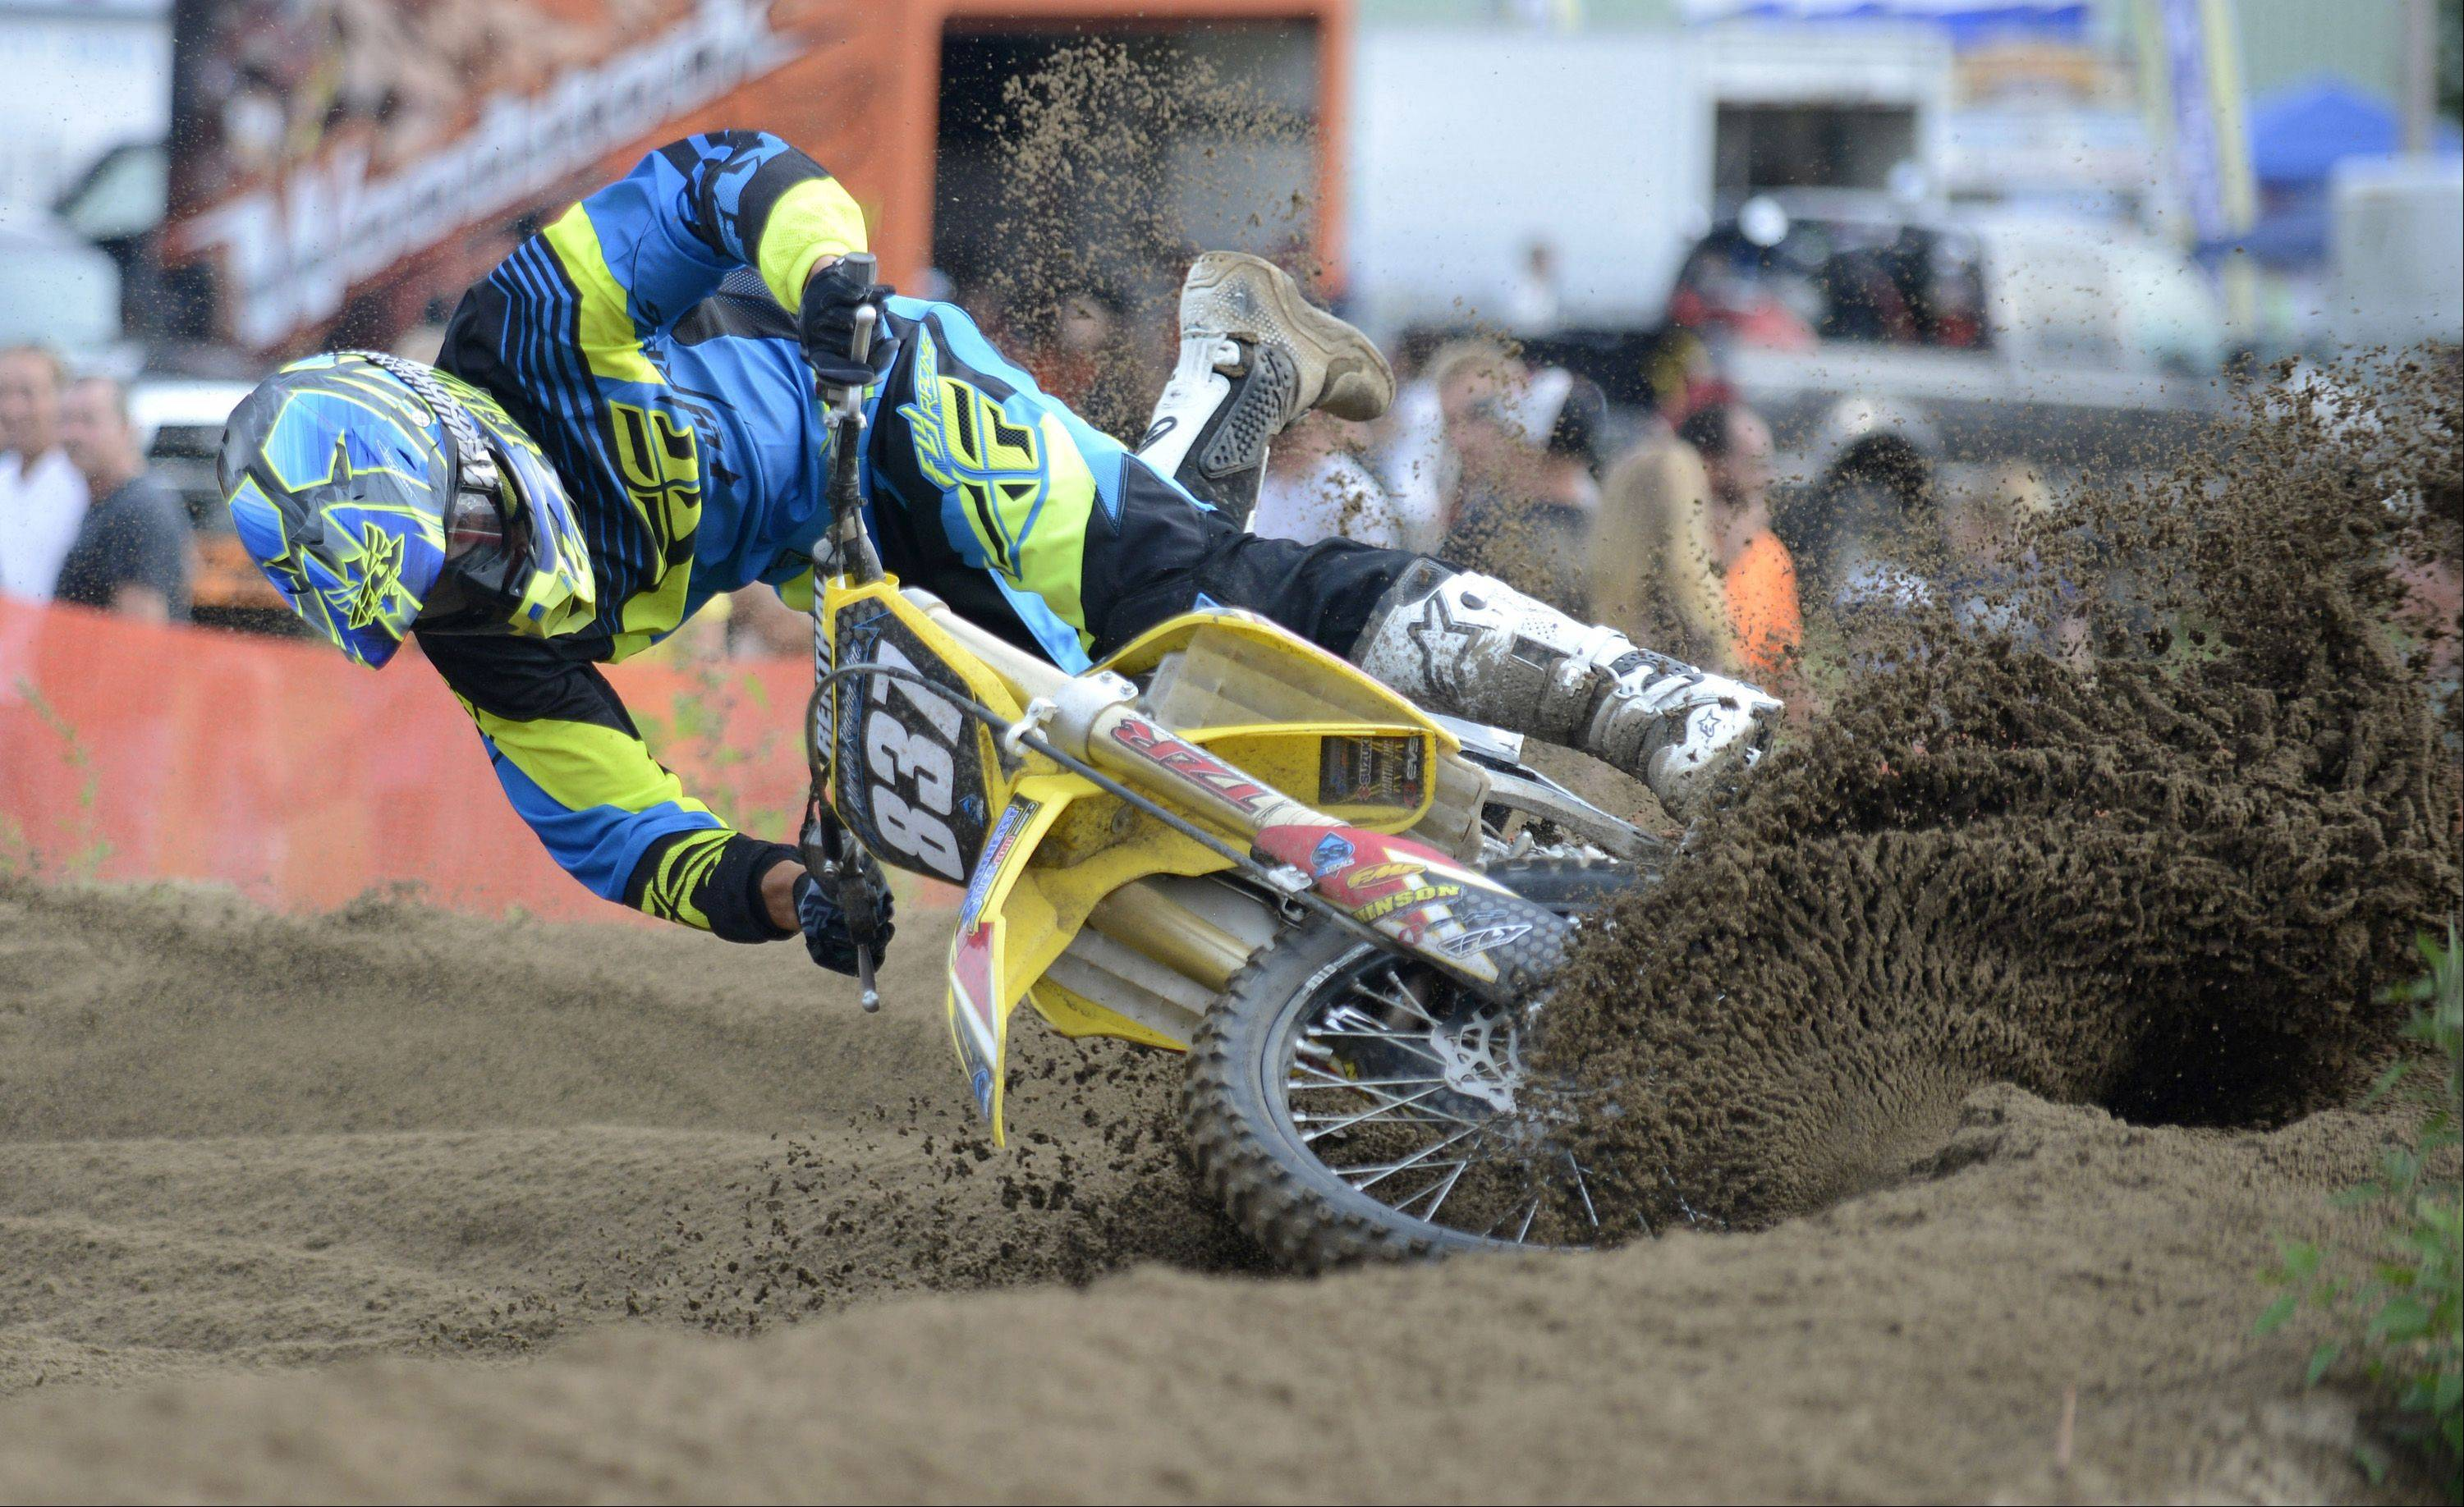 Ross Martin, 28, of Burlington, WI, tips his bike in the deep dirt of a bend and loses his first place lead in the 250 A class race at the motocross racing event at the McHenry County Fair in Woodstock on Friday, August 2. Martin has been racing since he was nine years old.